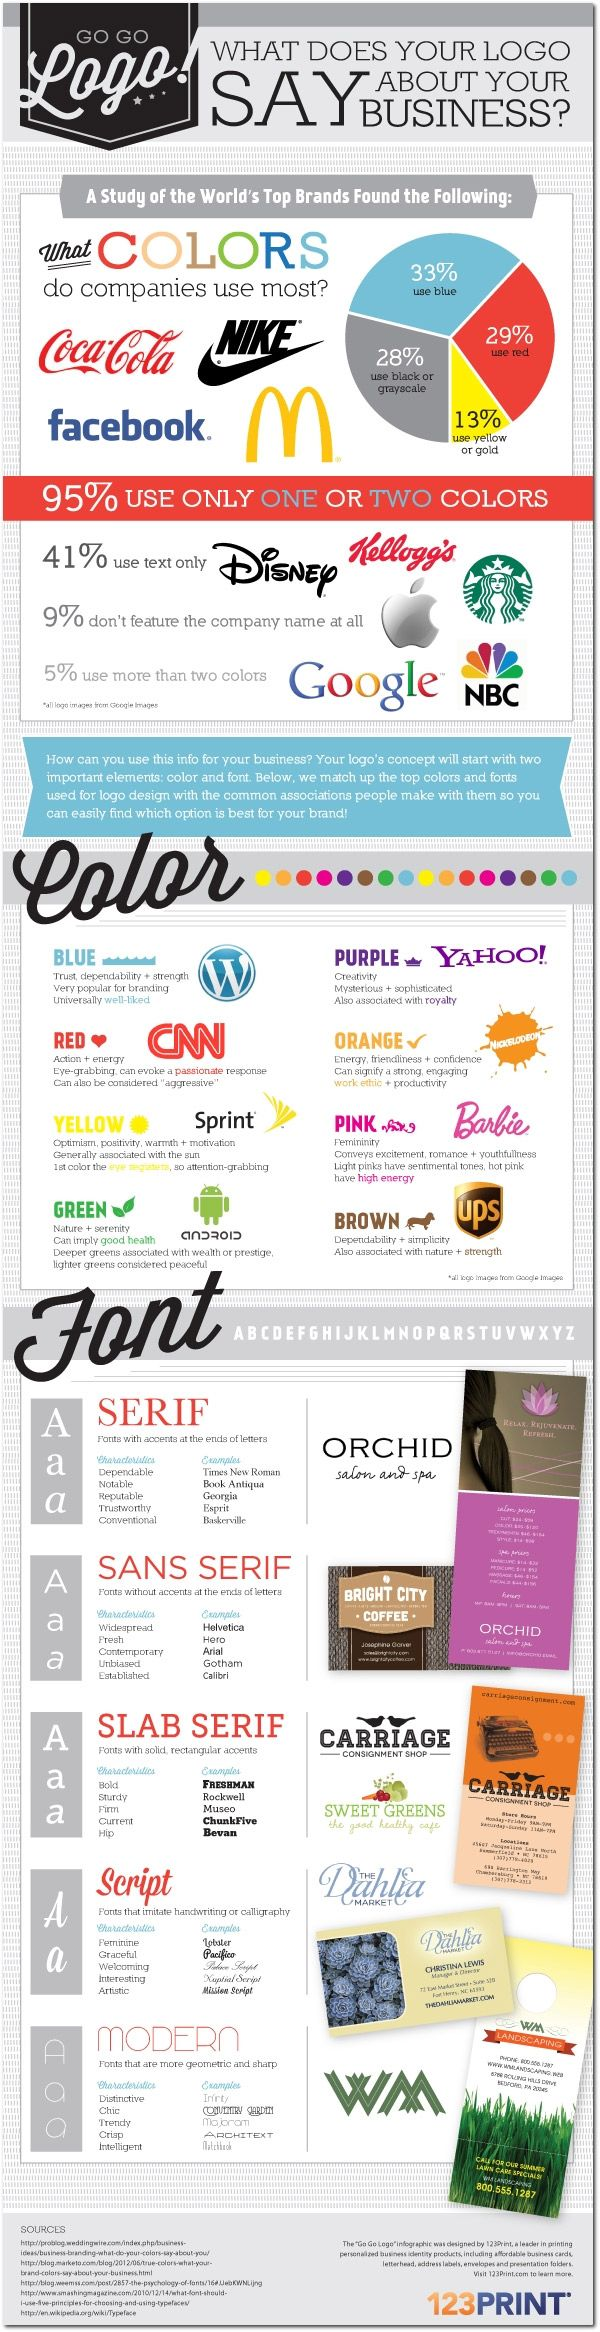 What your logo says about your brand.